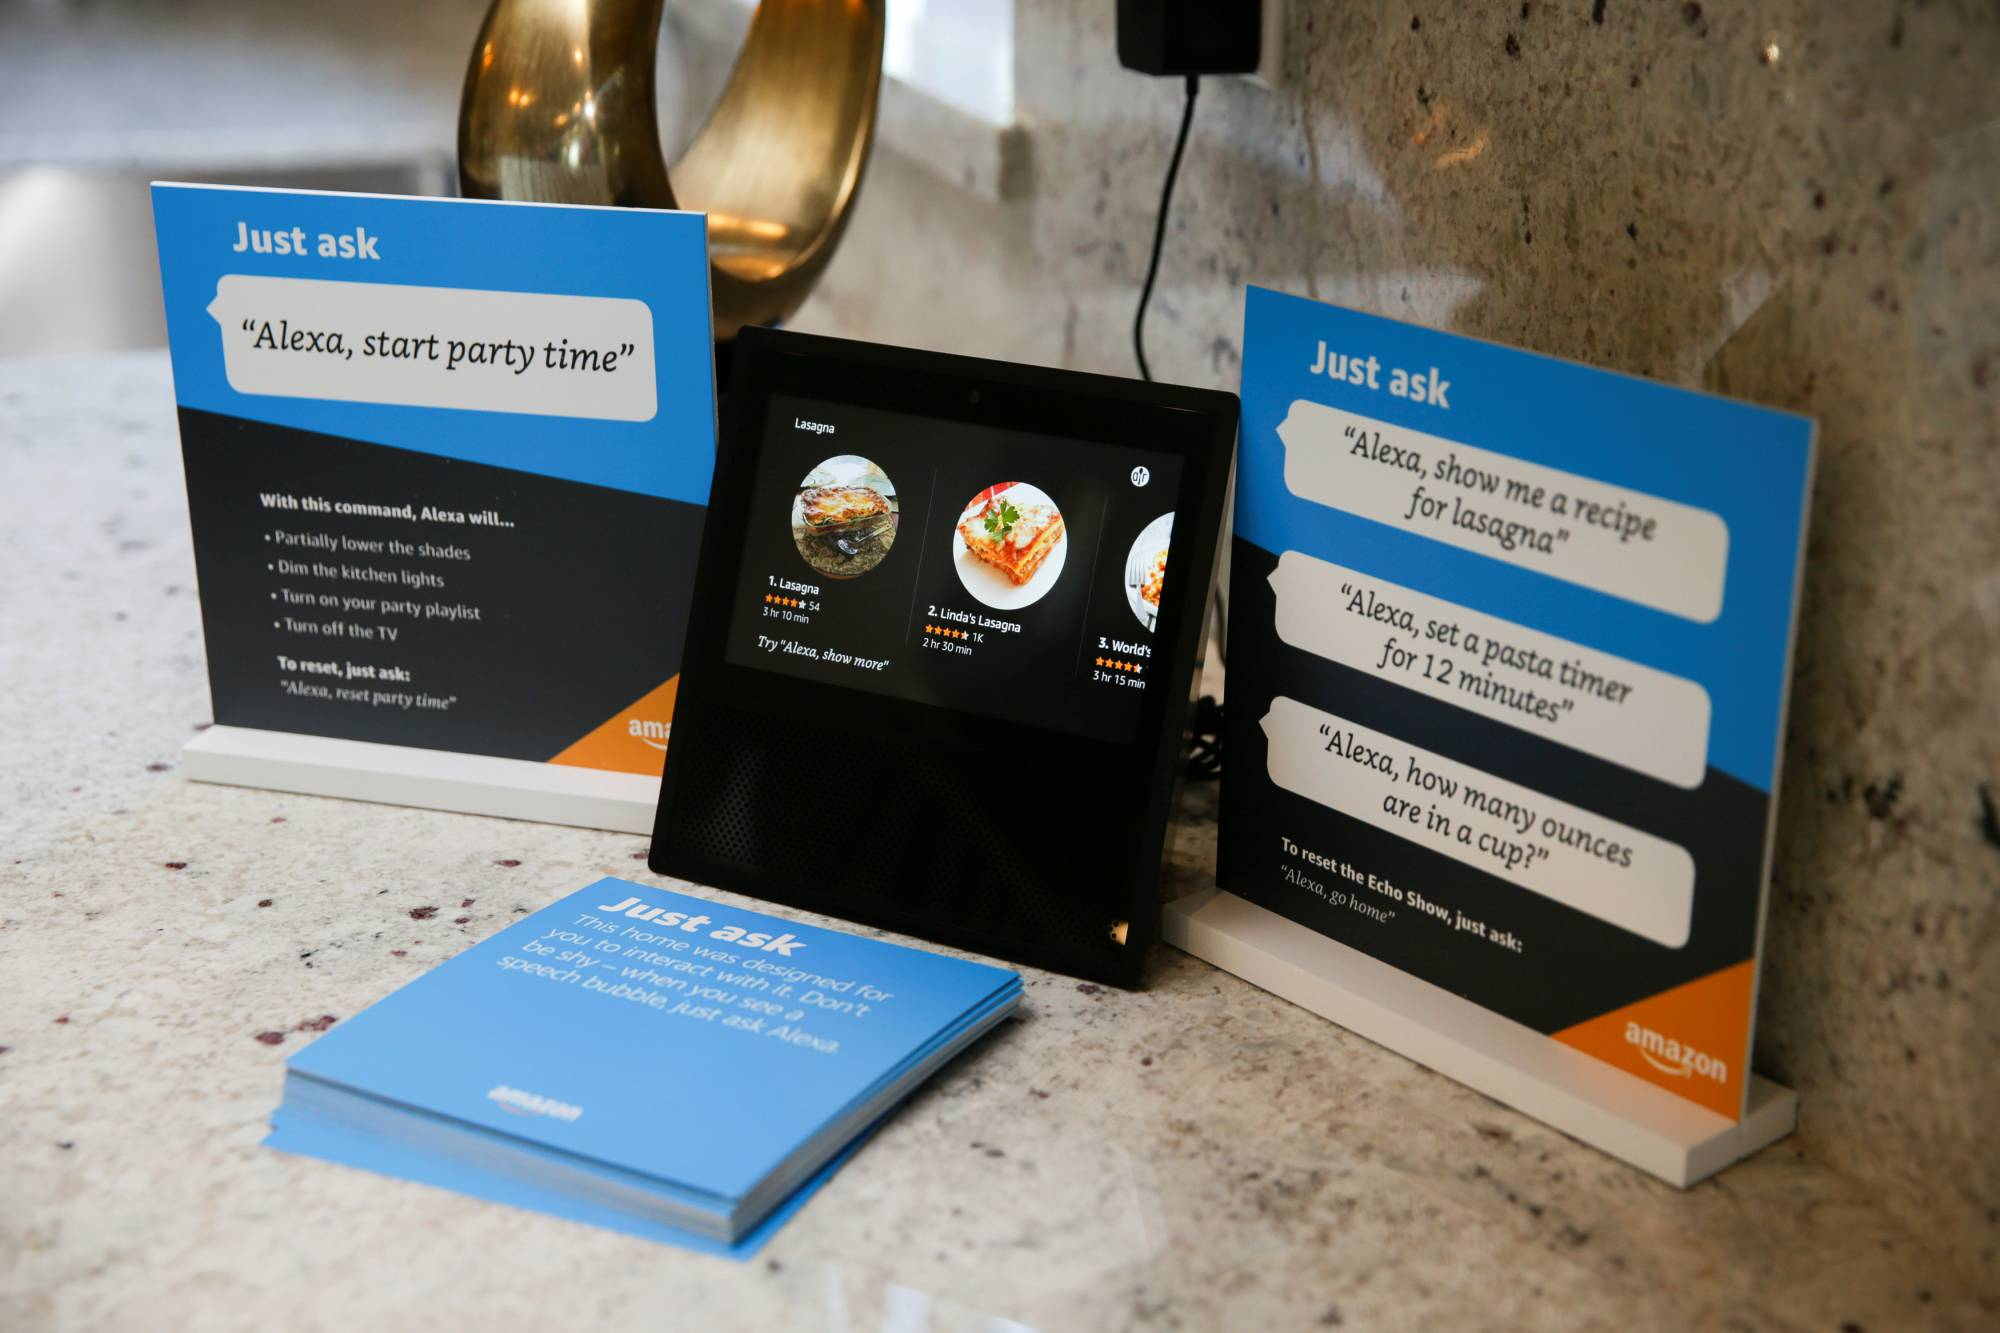 Recipes for Lasagna are seen on an Amazon Echo Show in an Amazon 'experience center'  in Vallejo